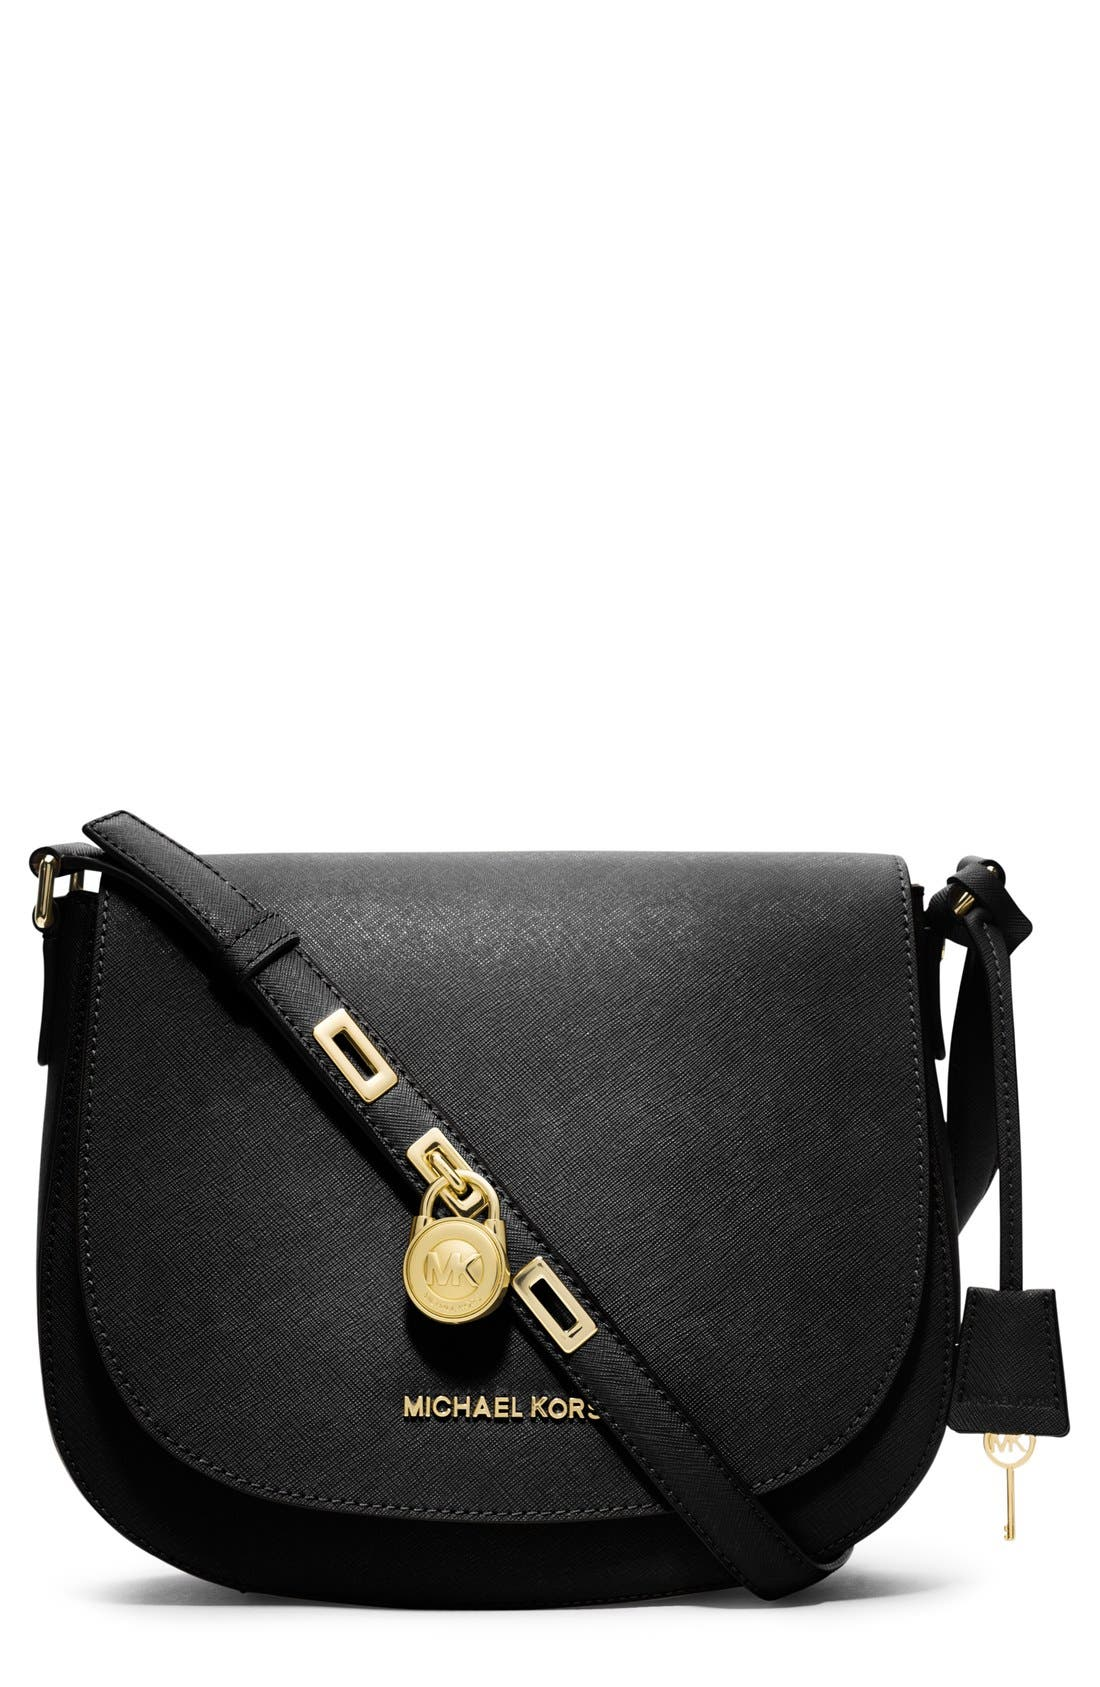 Alternate Image 1 Selected - MICHAEL Michael Kors 'Large' Saffiano Leather Messenger Bag